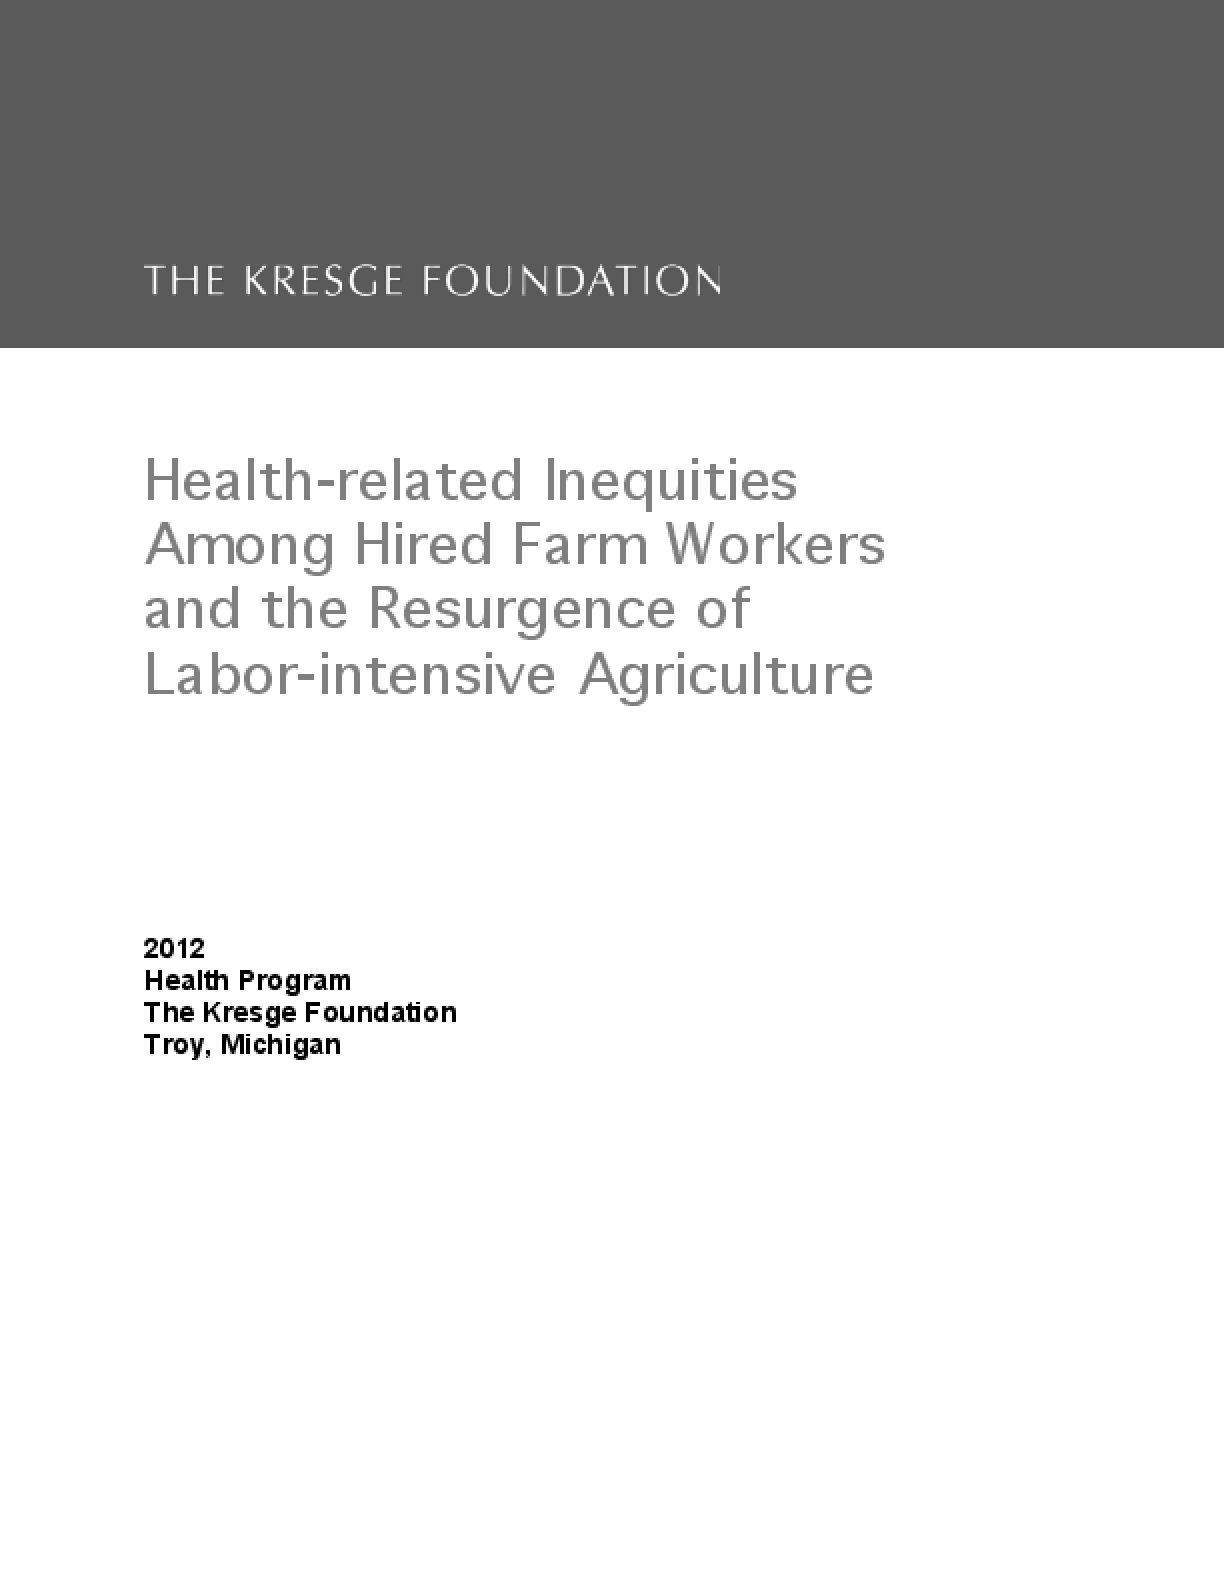 Health-related Inequities Among Hired Farm Workers and the Resurgence of Labor-intensive Agriculture